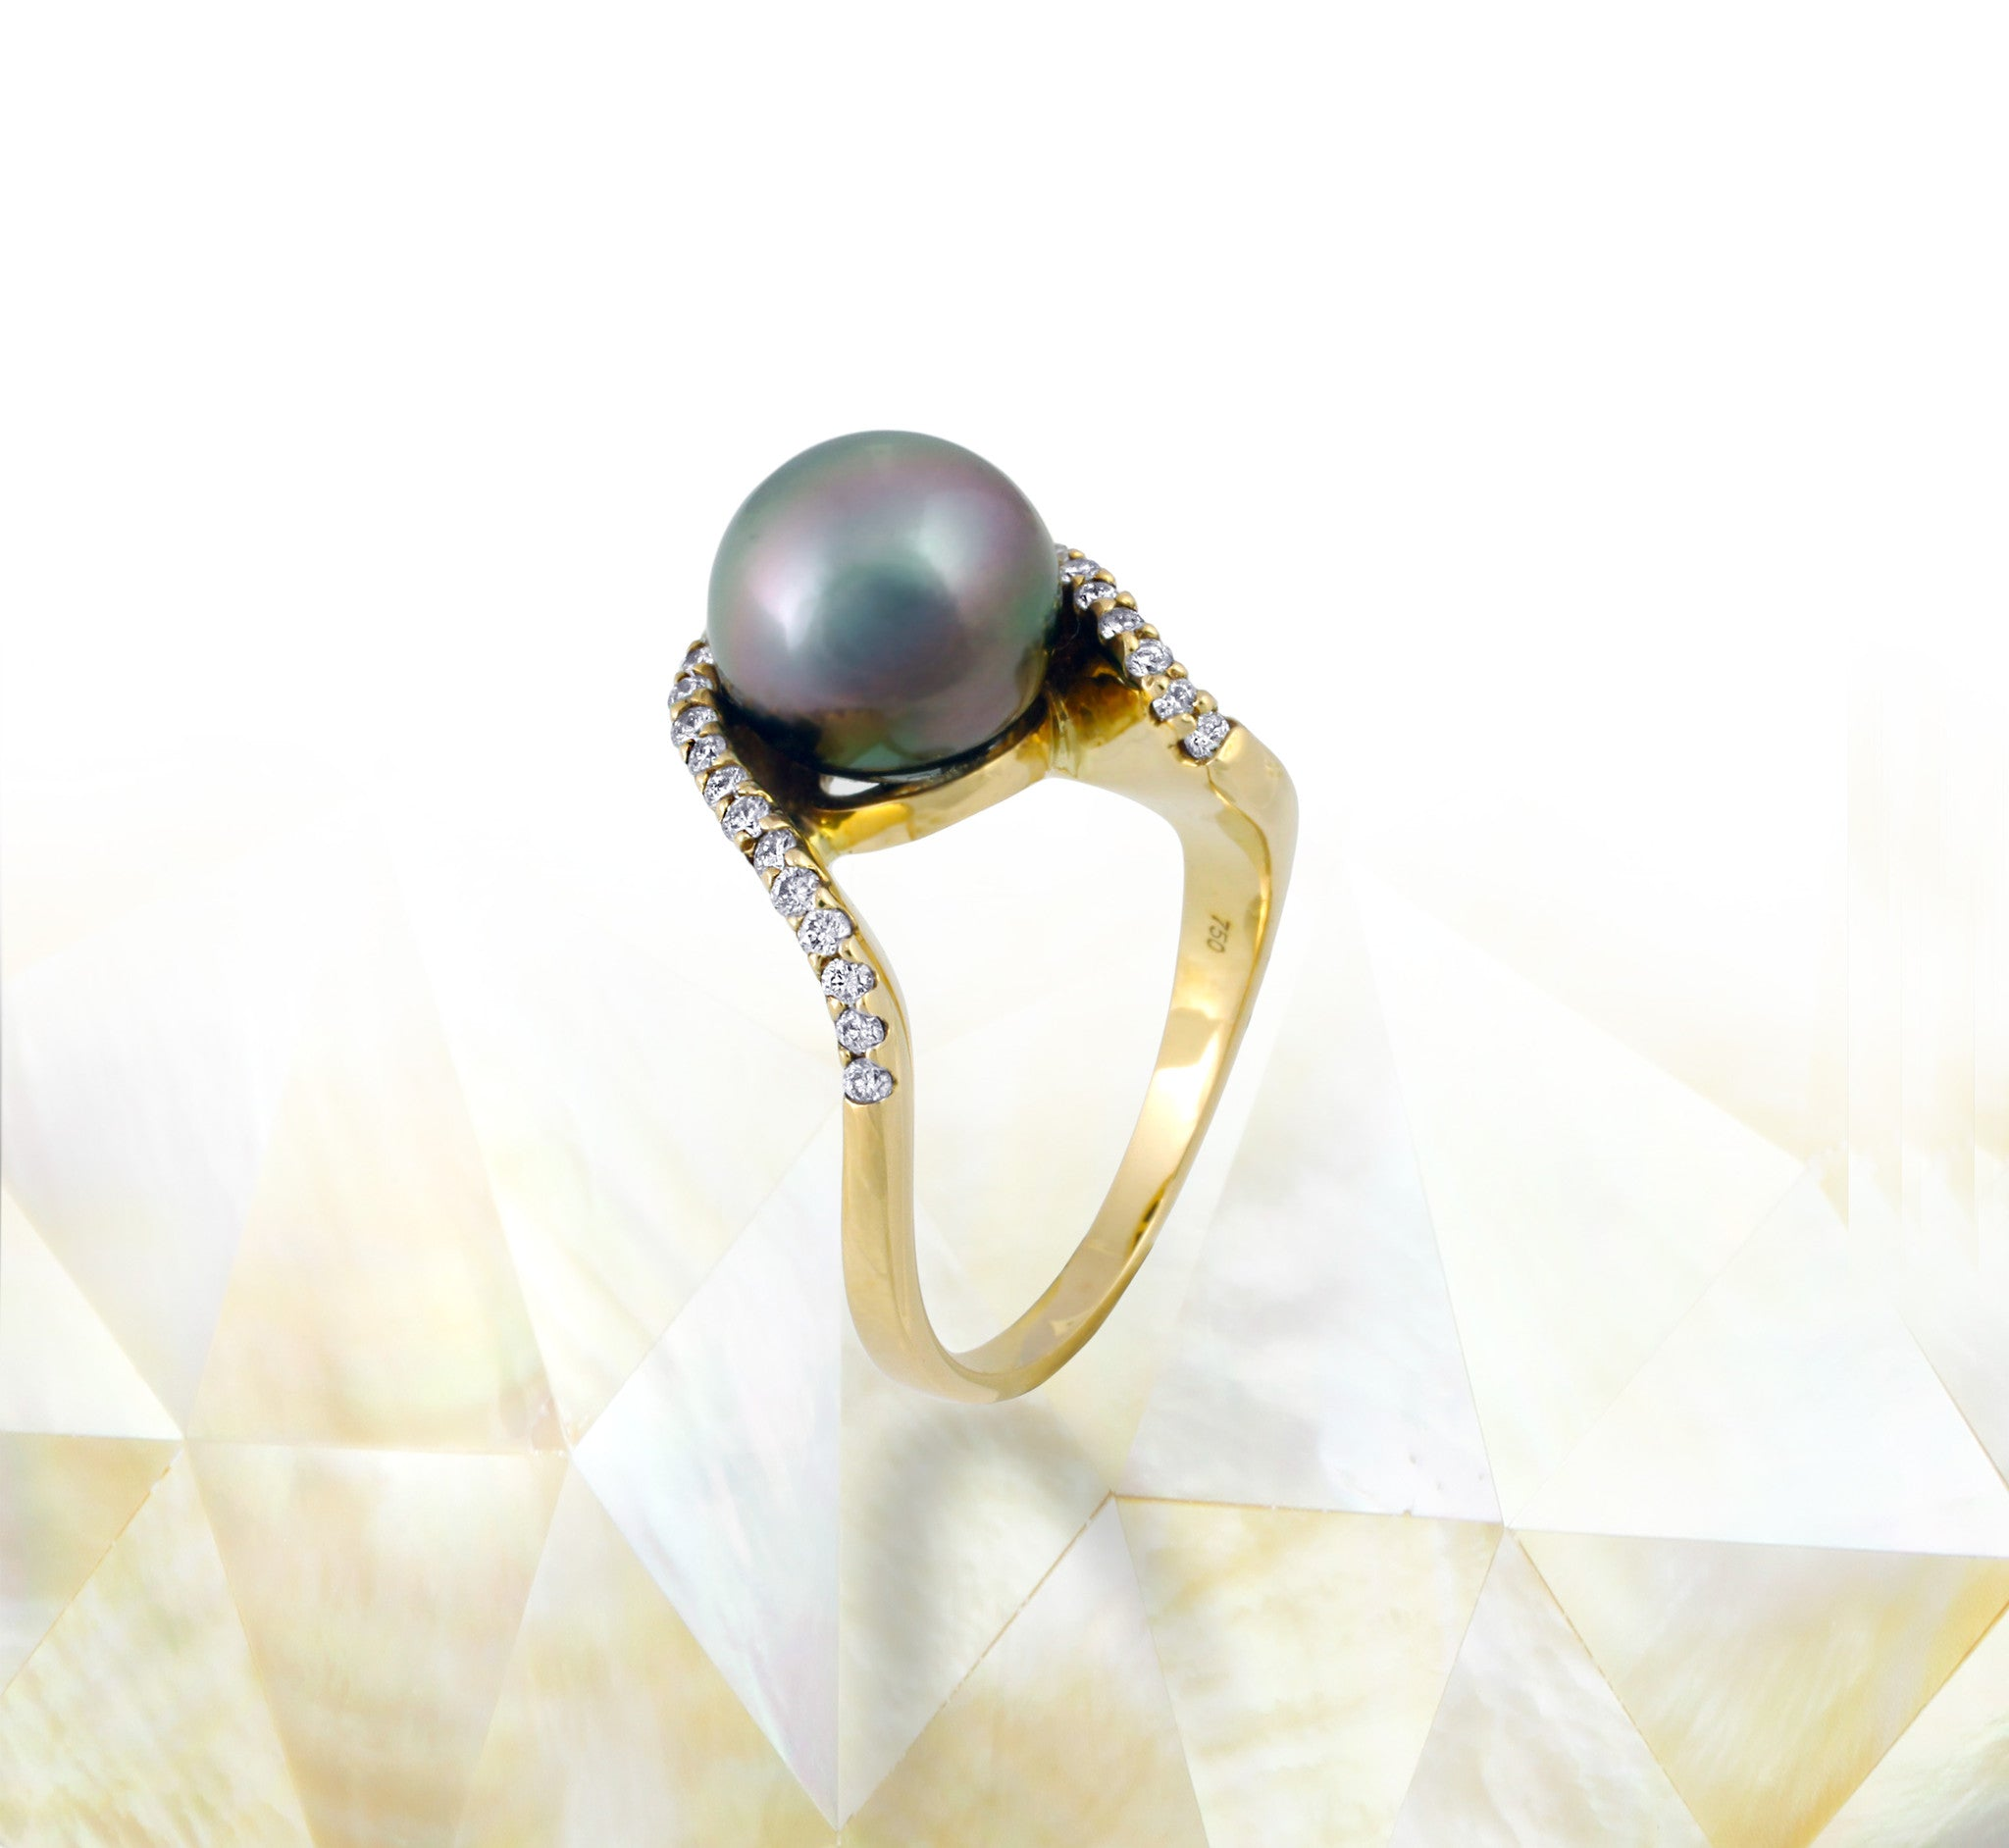 Tahitian pearl ring - 18K gold with Diamonds - RGYDPE00684